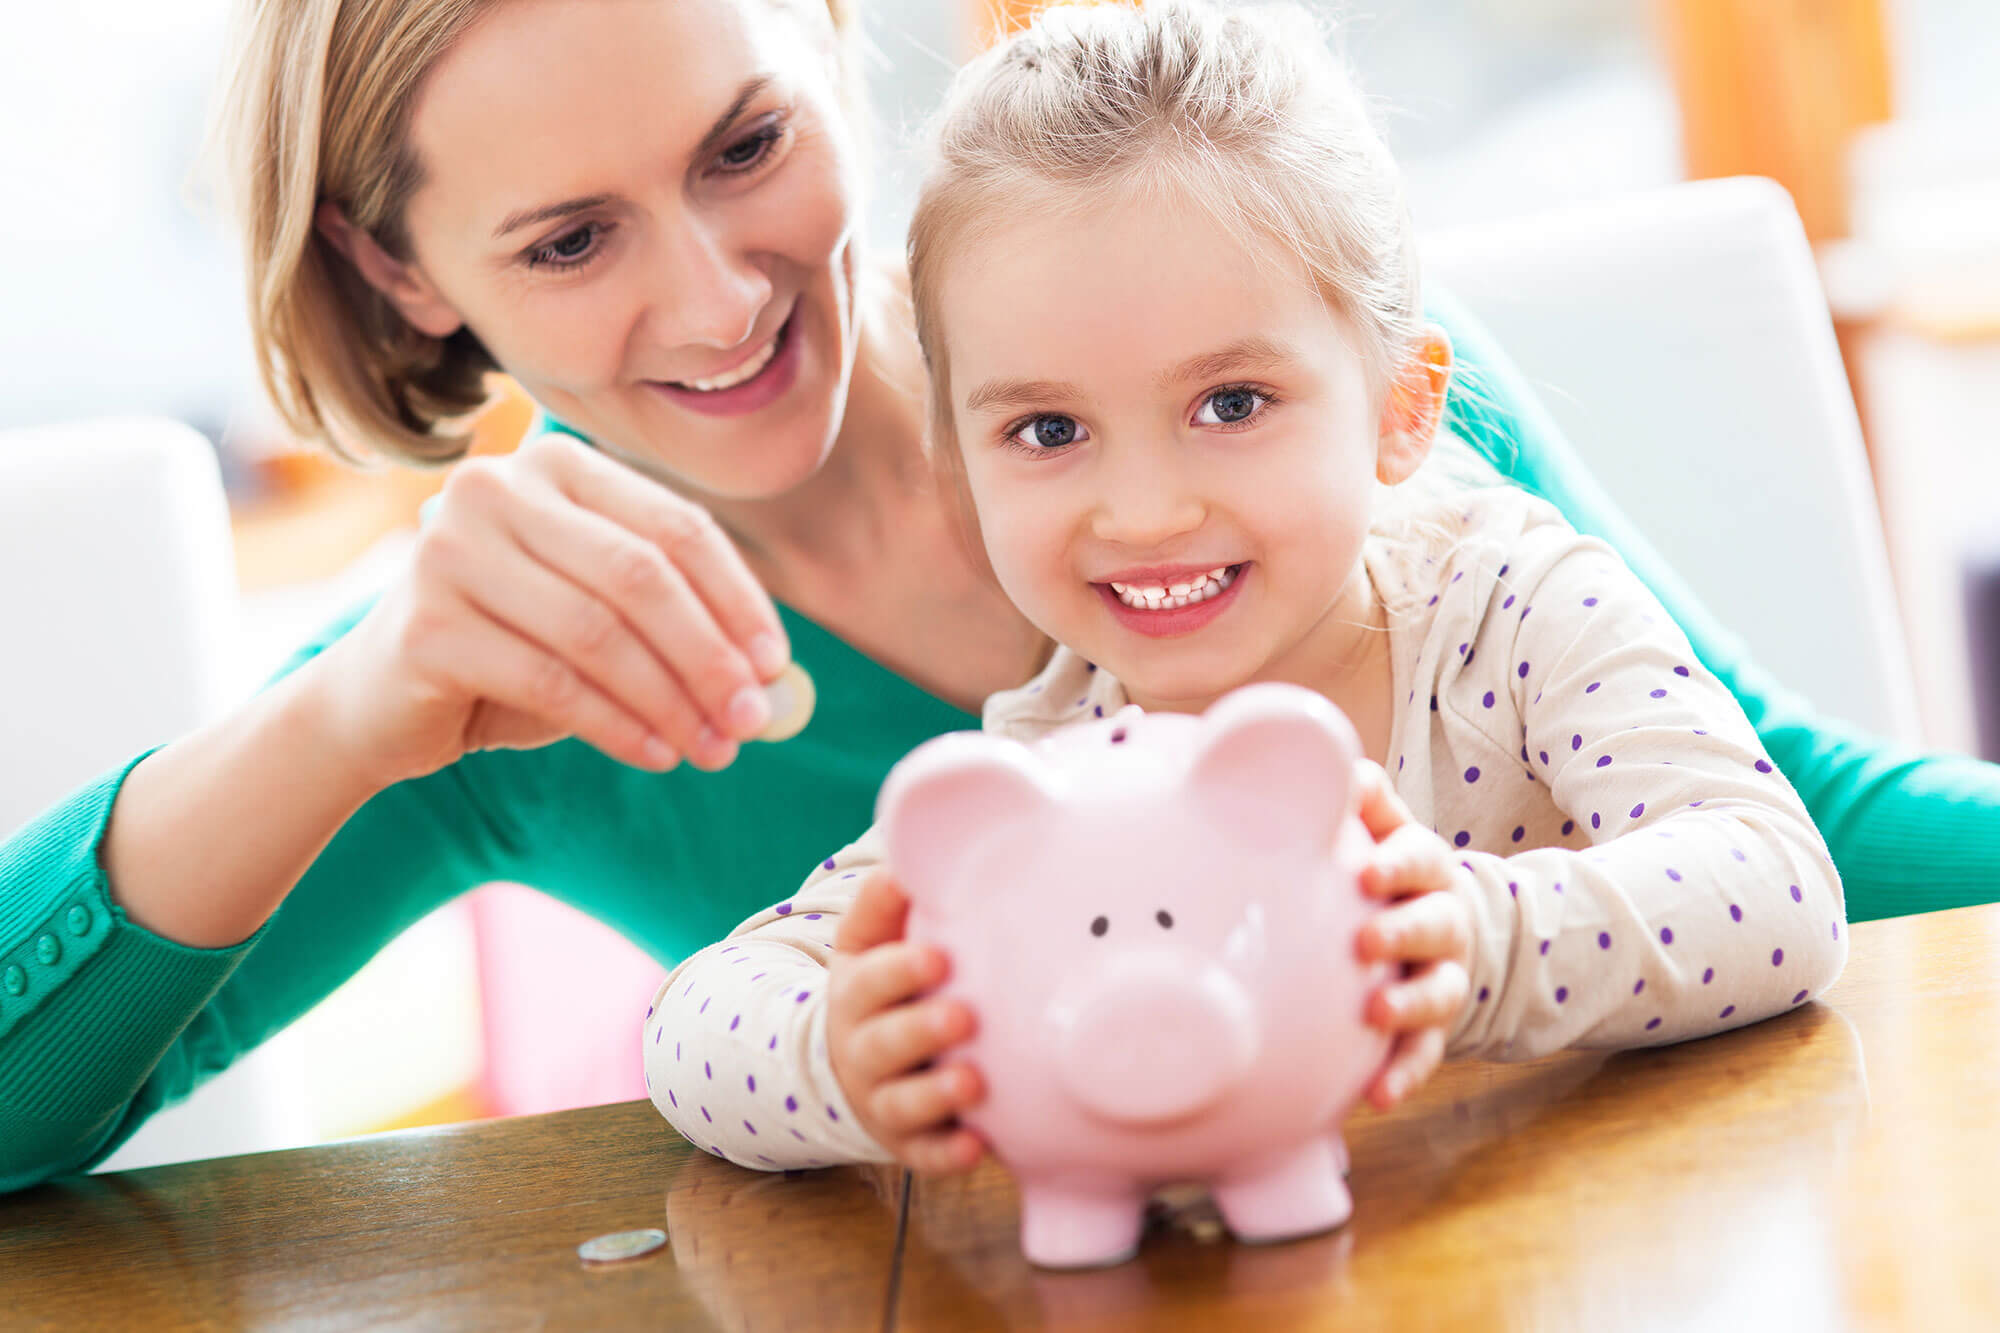 Photo of a Small Child and Woman putting coins into a Piggy Bank